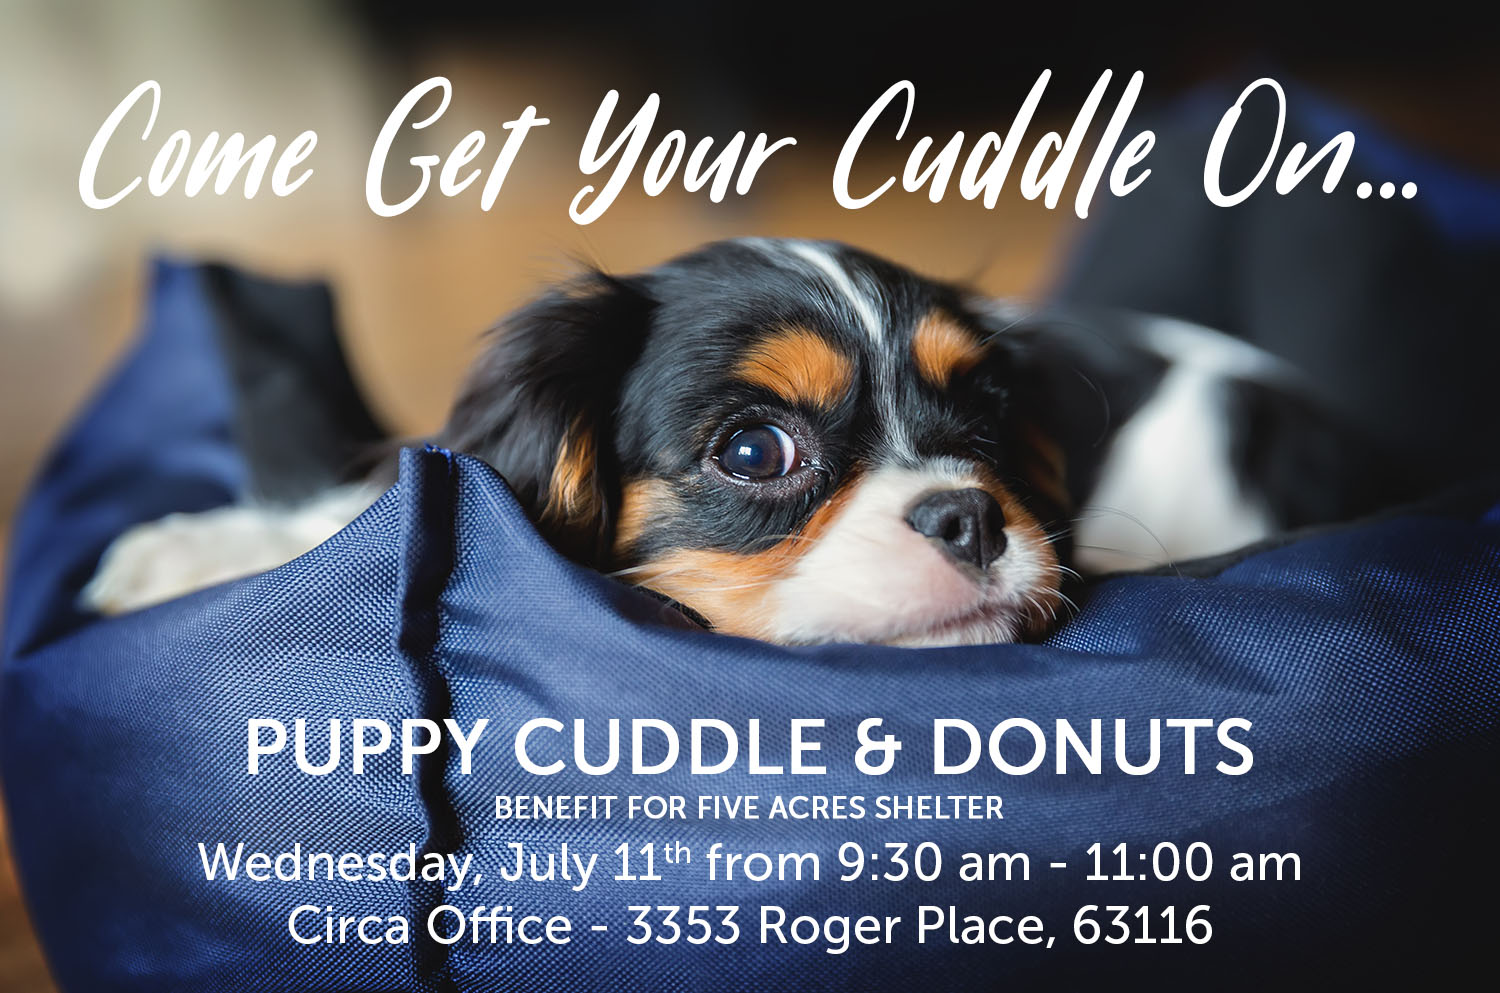 Puppy Cuddle & Donuts